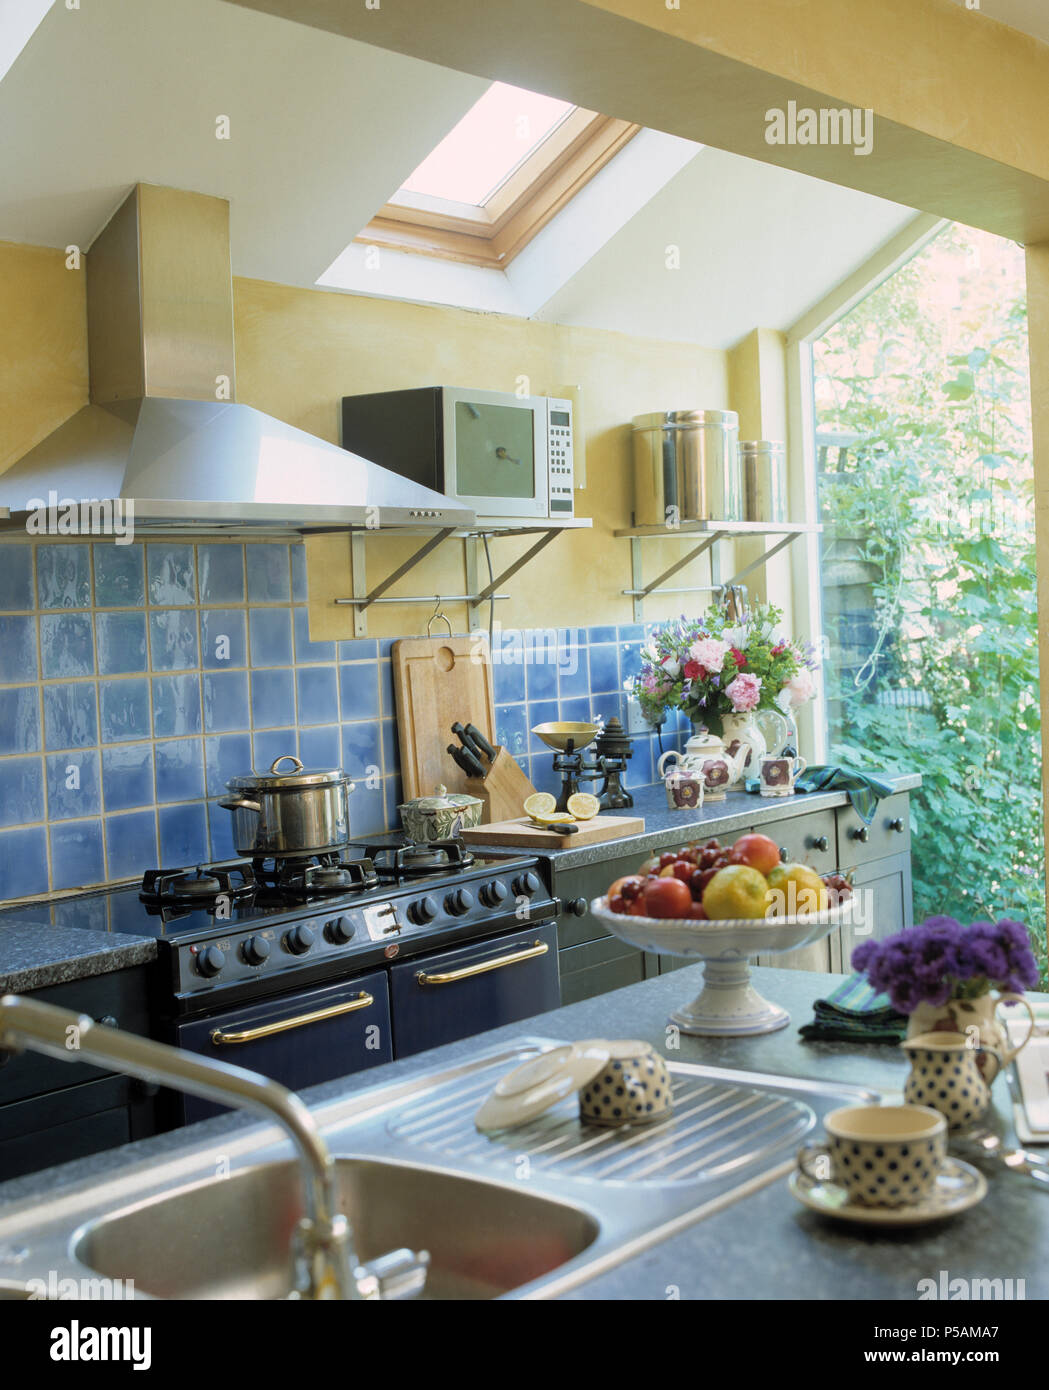 Stainless Steel Sink In Modern Kitchen Extension With Blue Wall